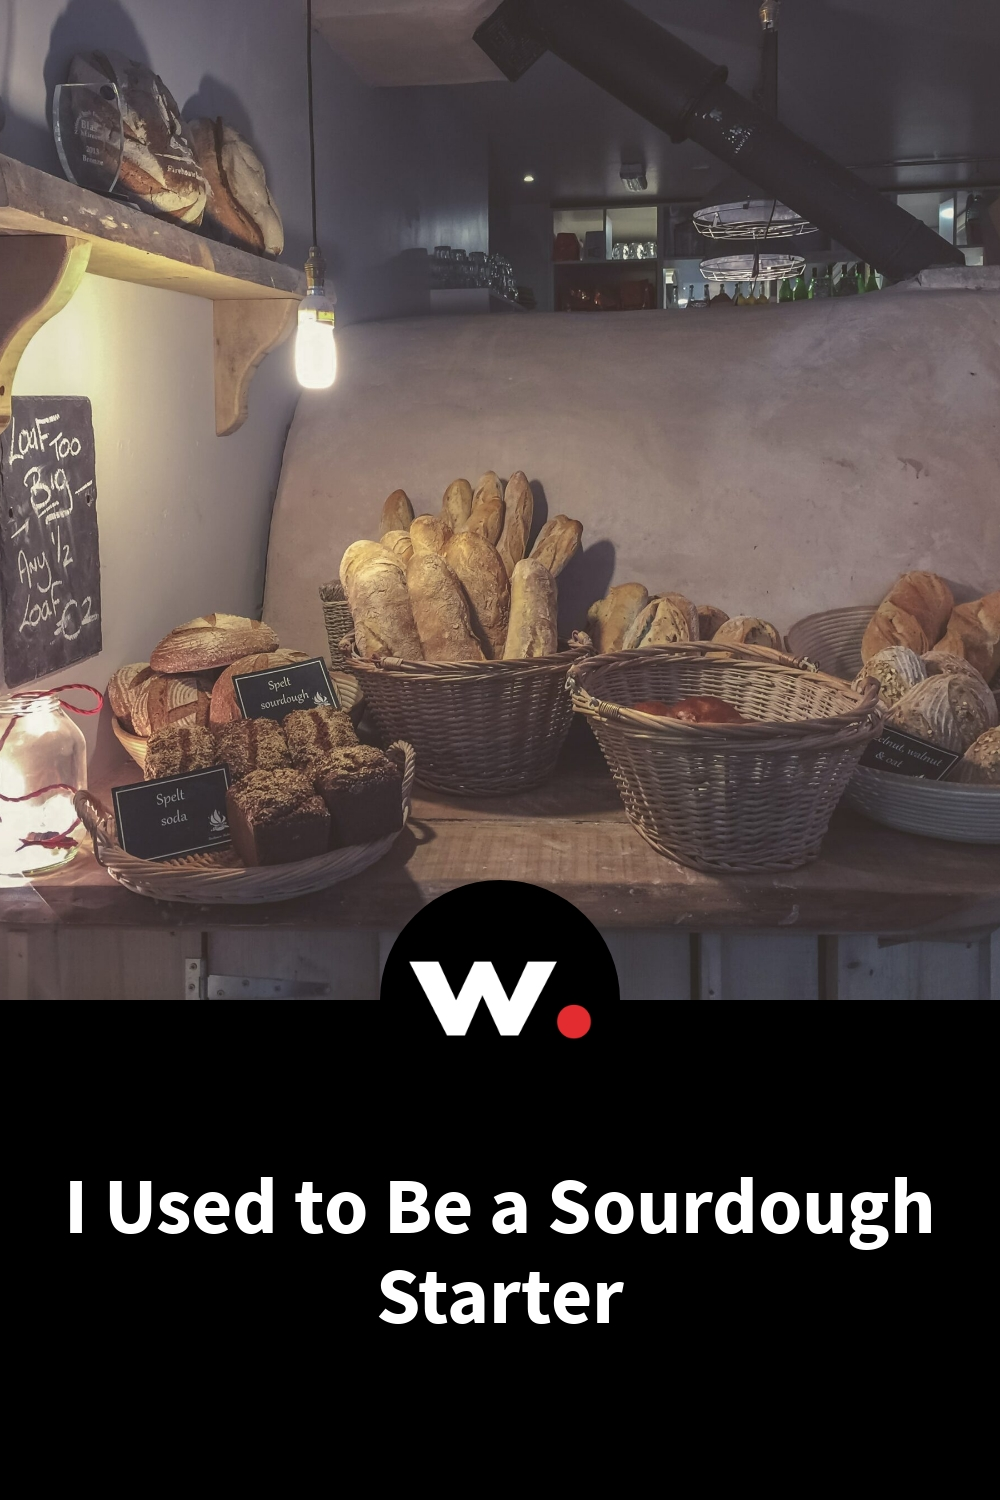 I Used to Be a Sourdough Starter